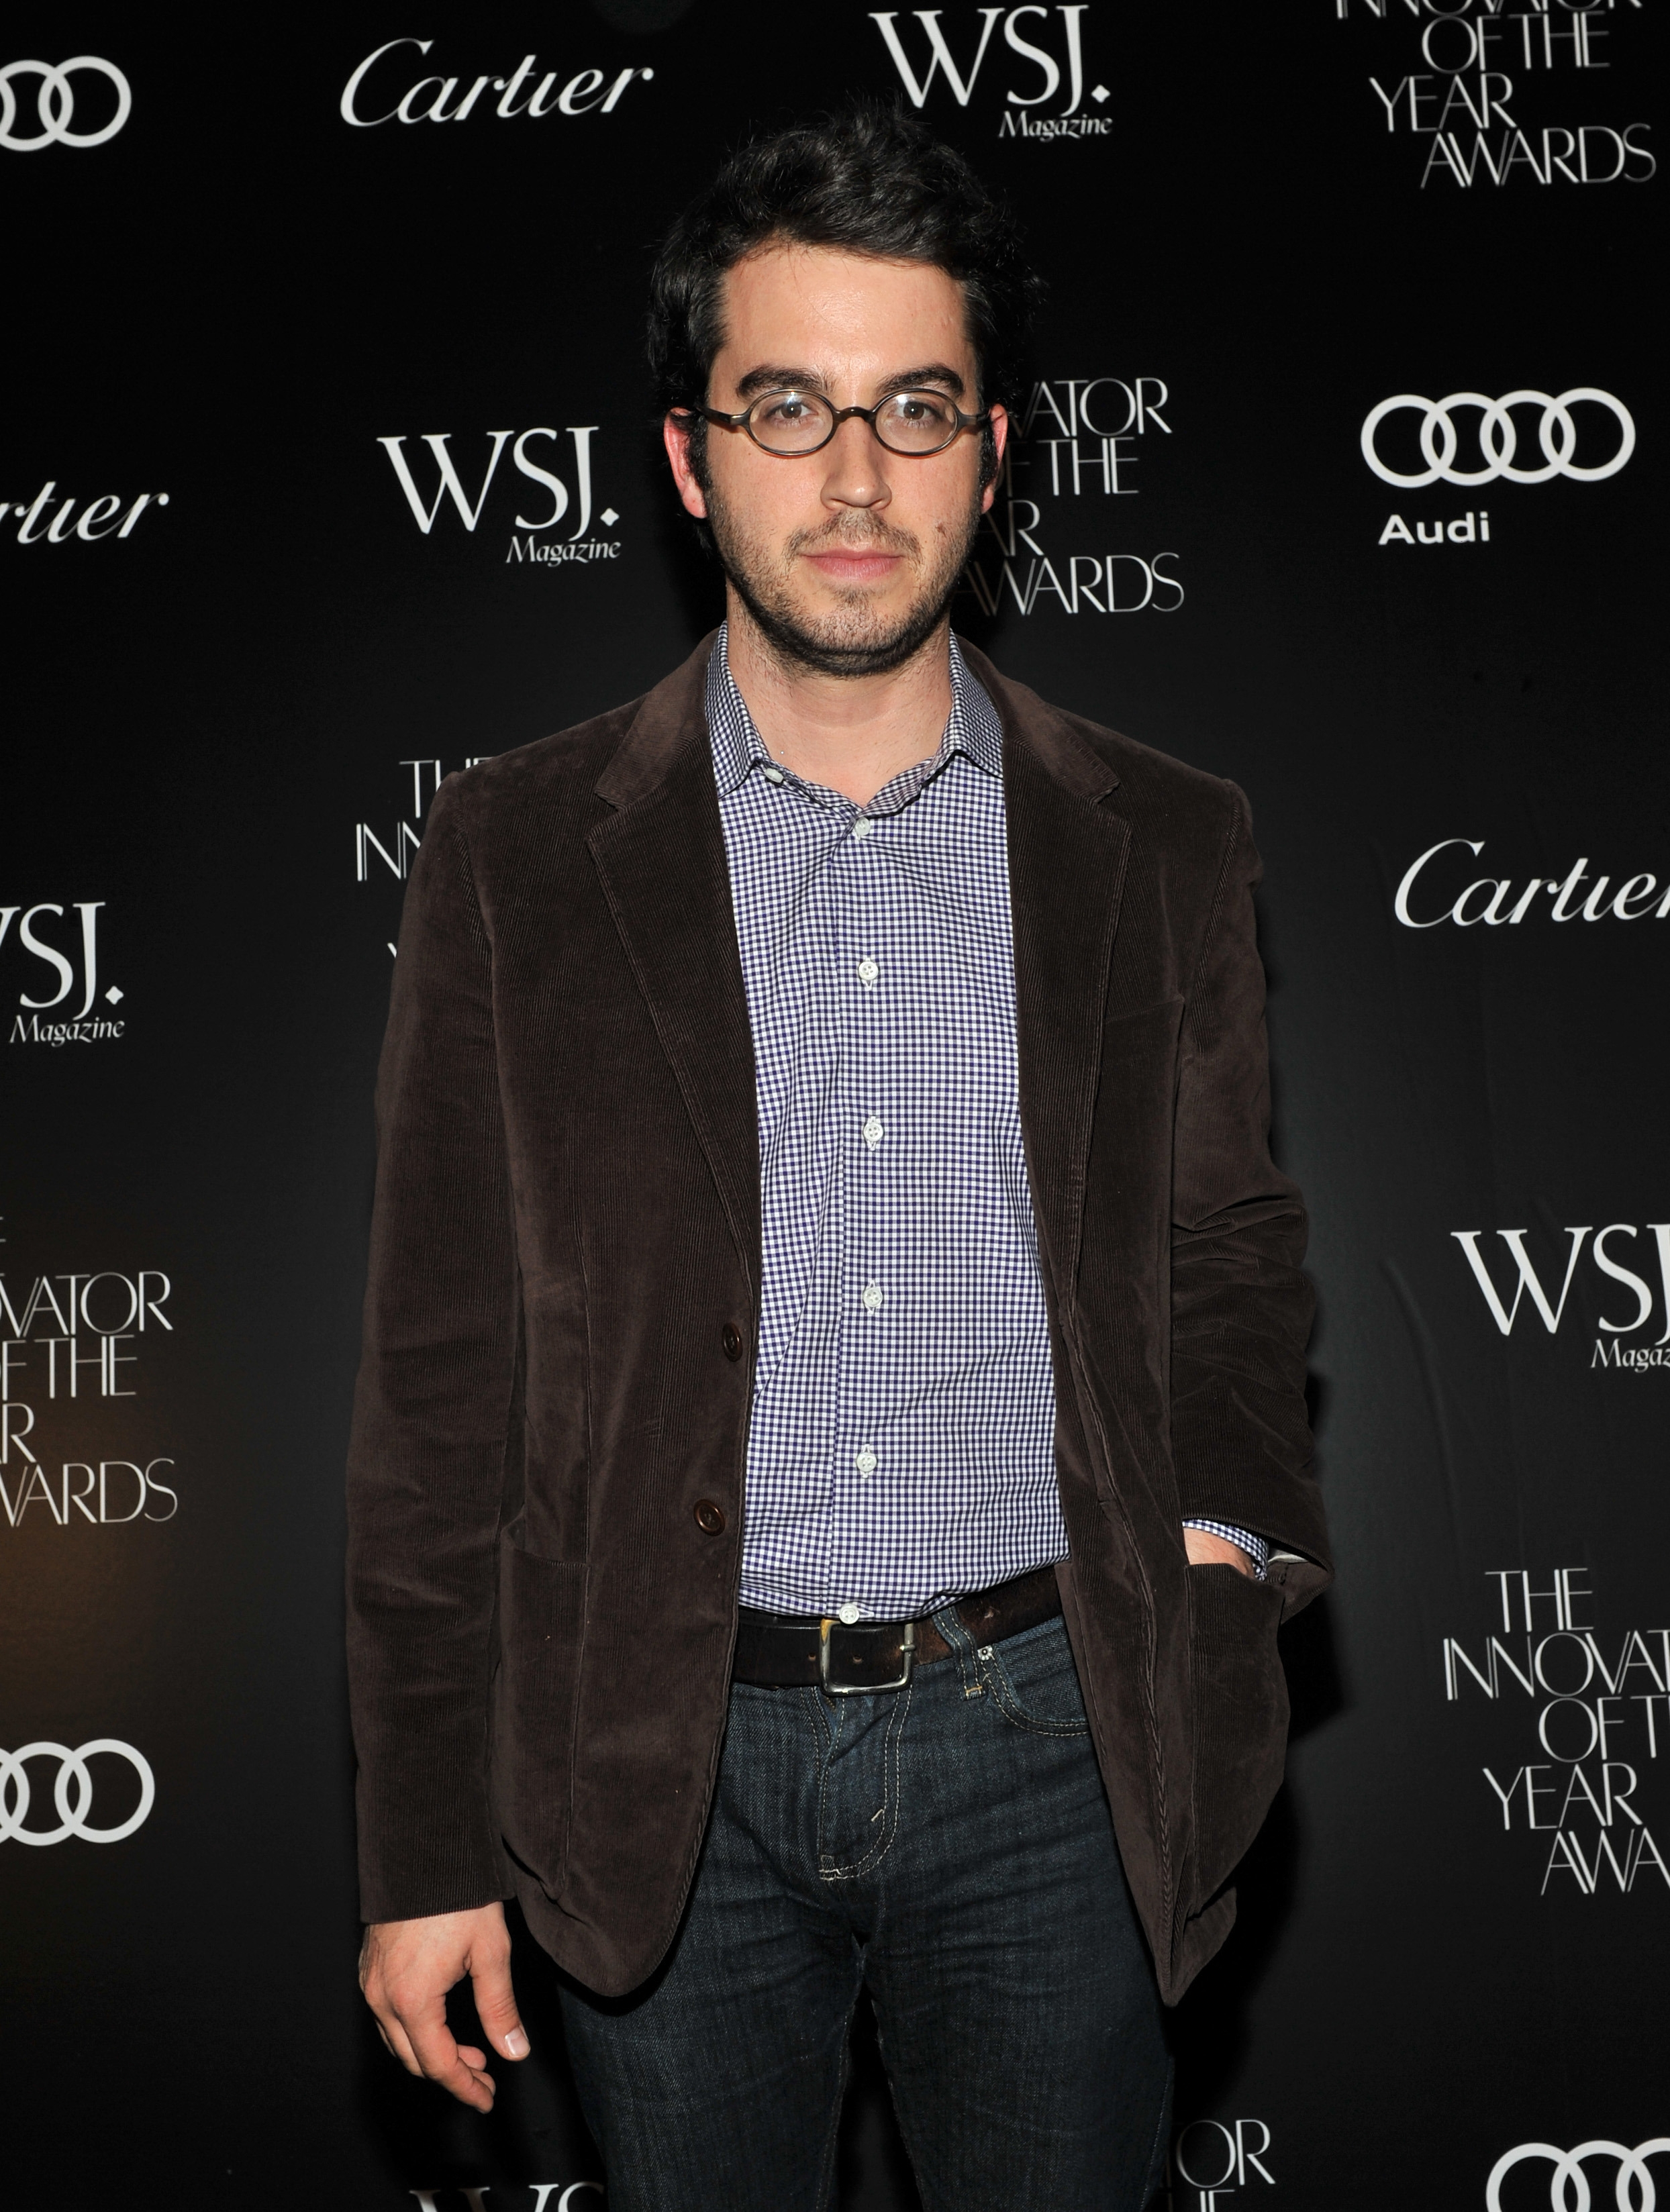 After 11 years, a monumental novel by Jonathan Safran Foer